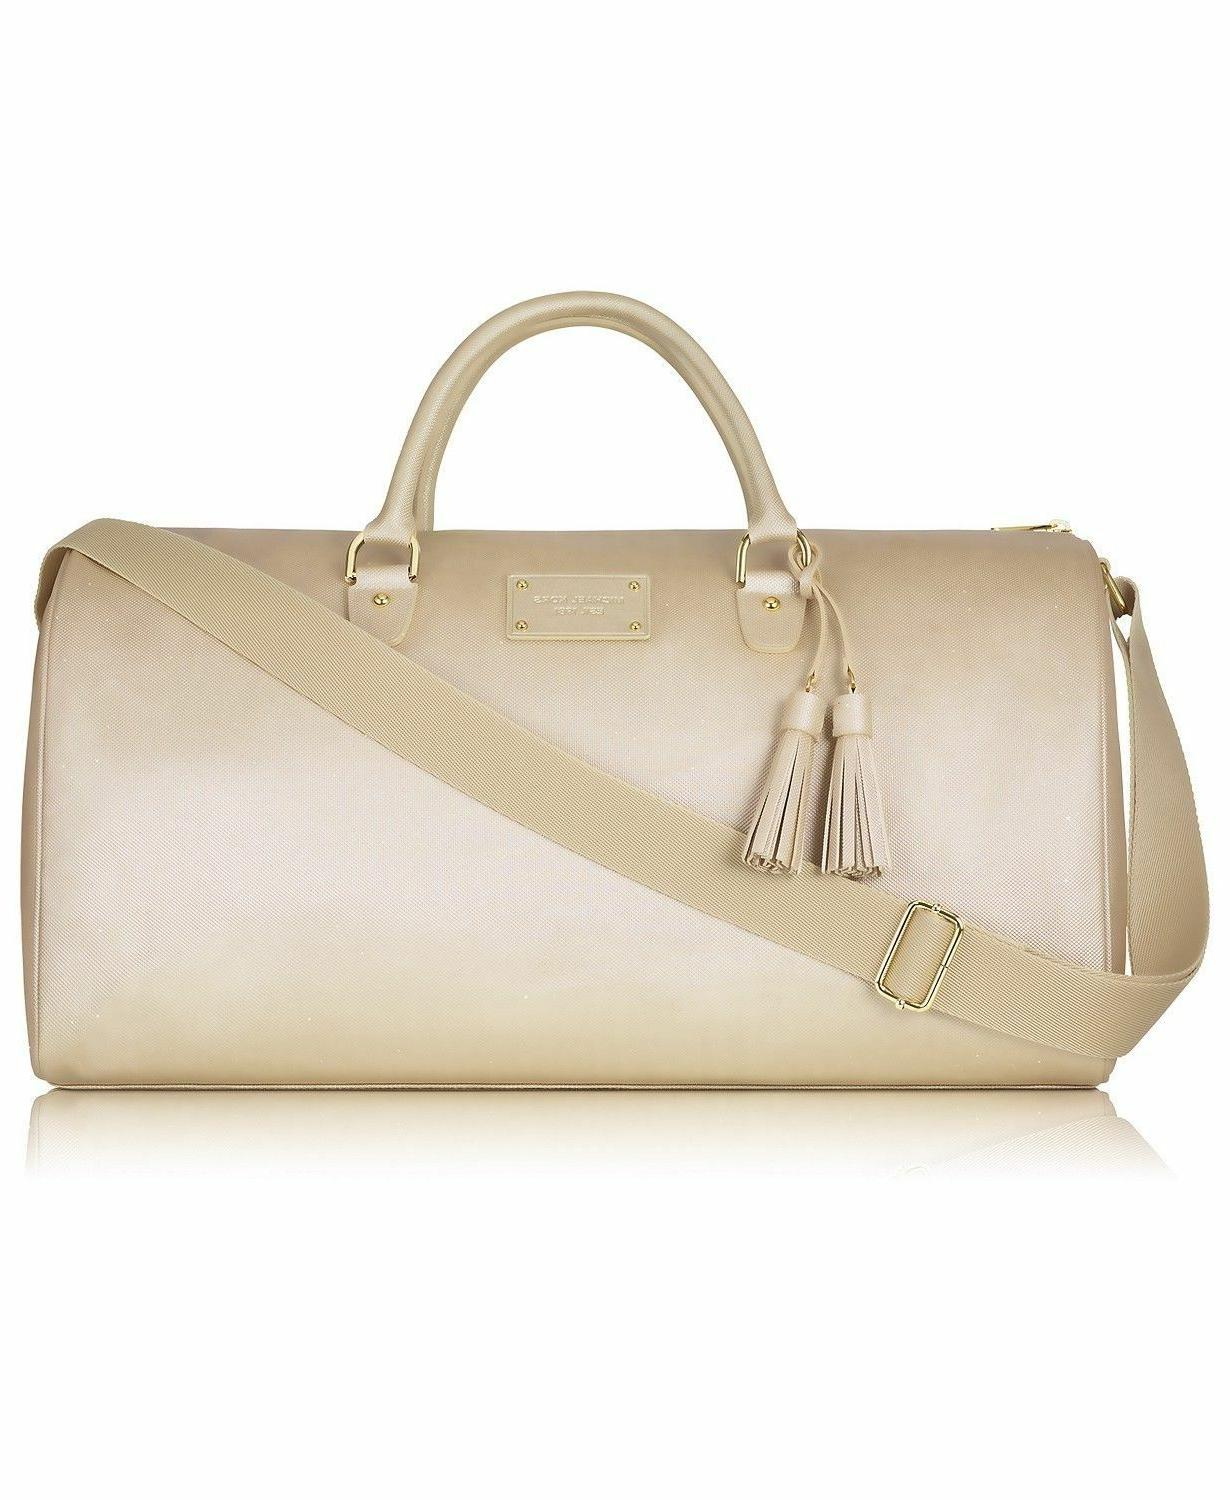 MICHAEL KORS gold metallic tote bag shoulder duffle canvas t